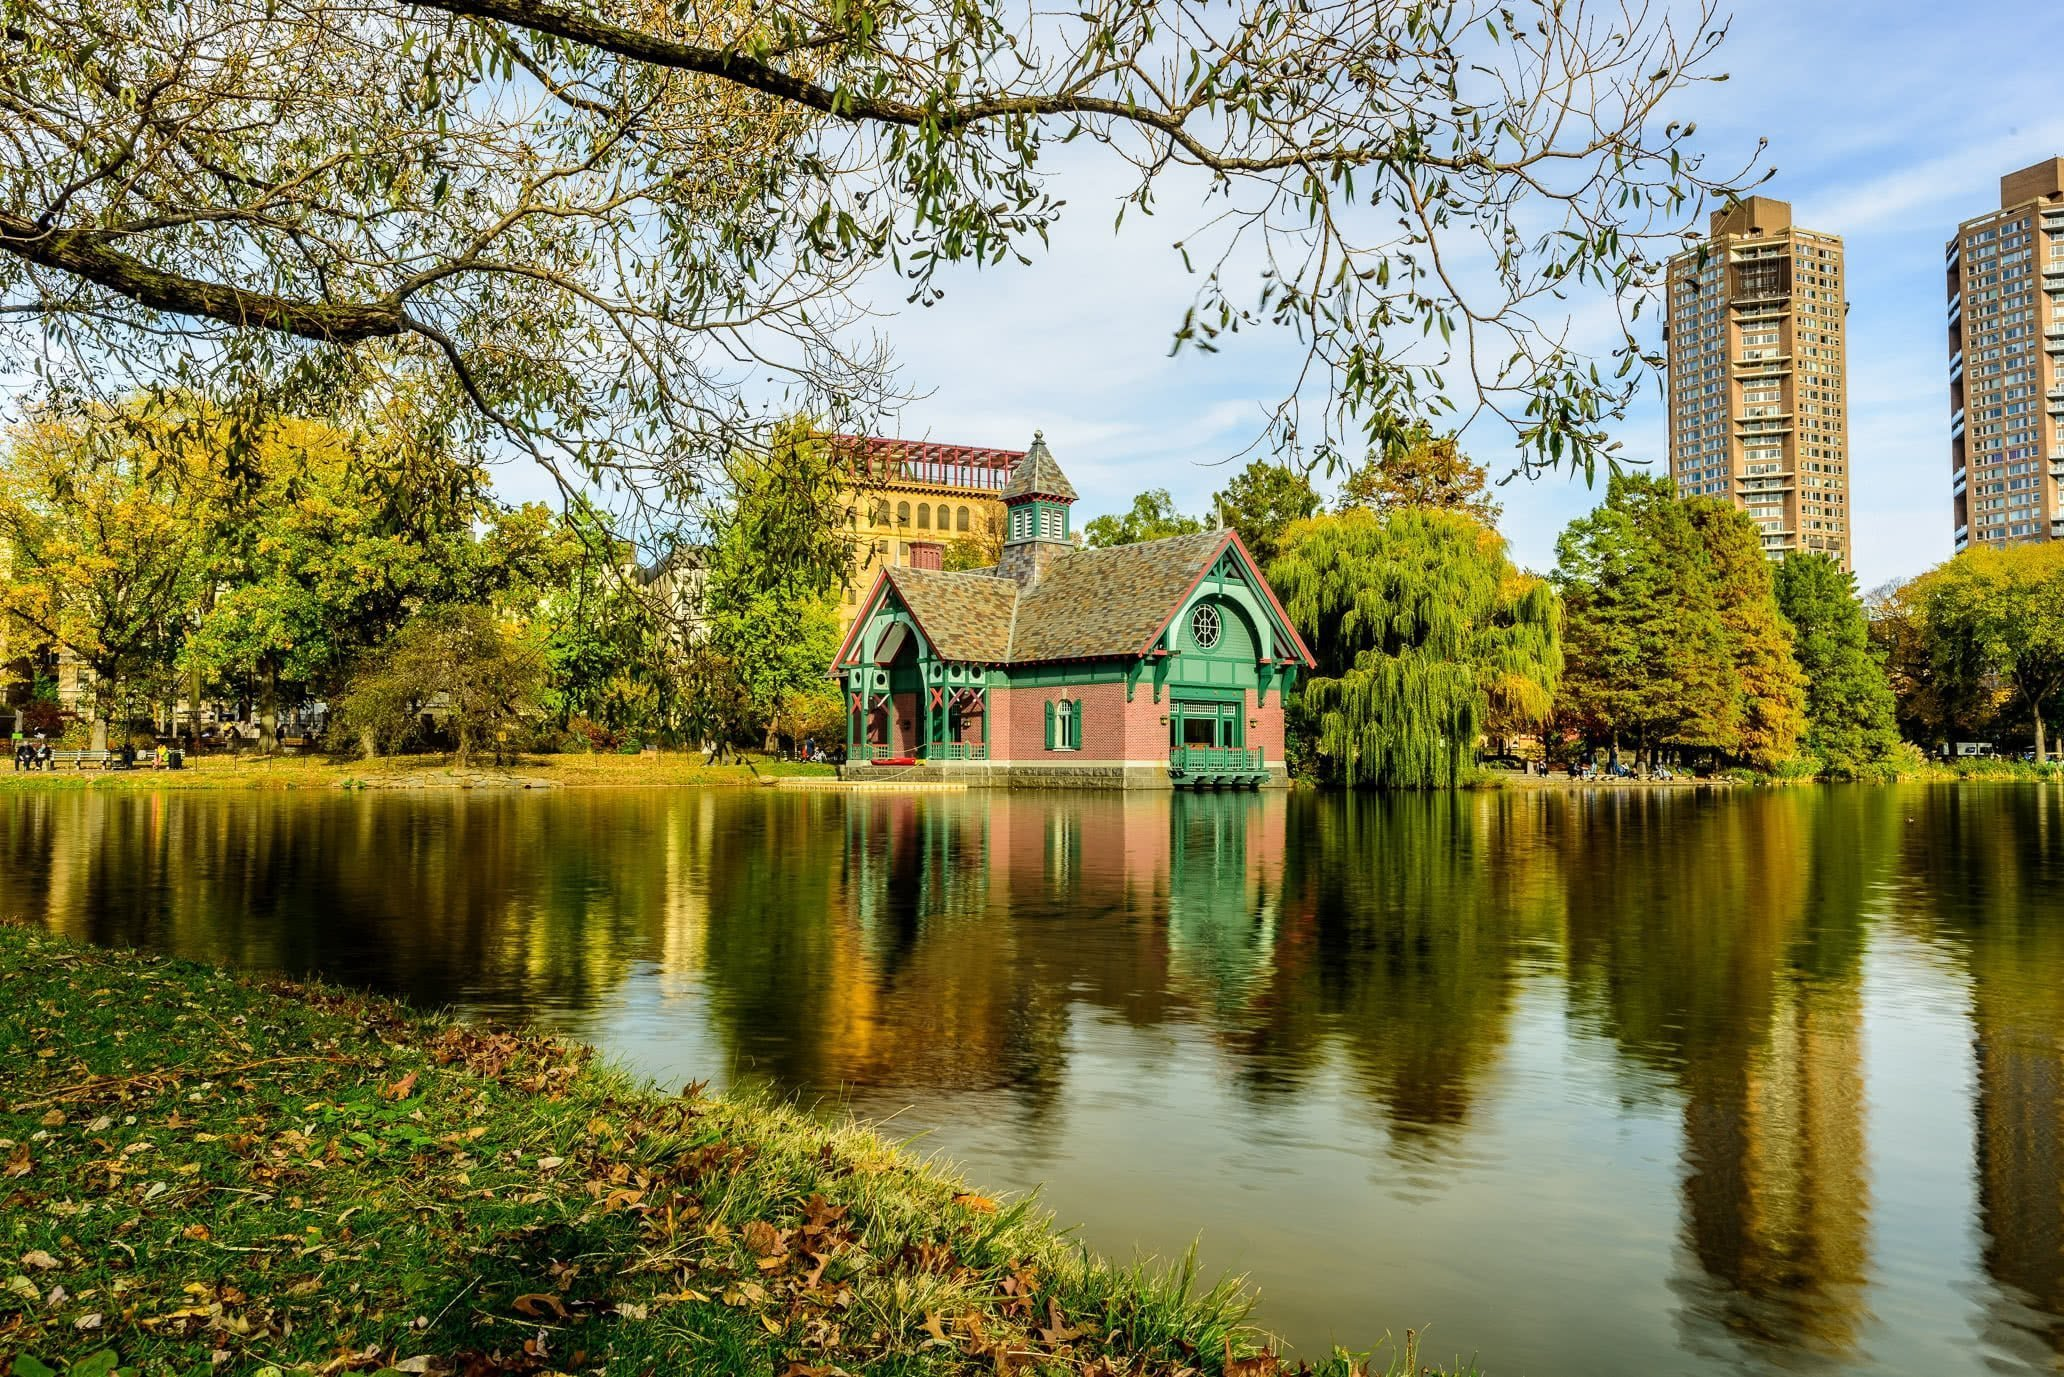 Central Park, Harlem Meer and Charles A. Dana Discovery Center